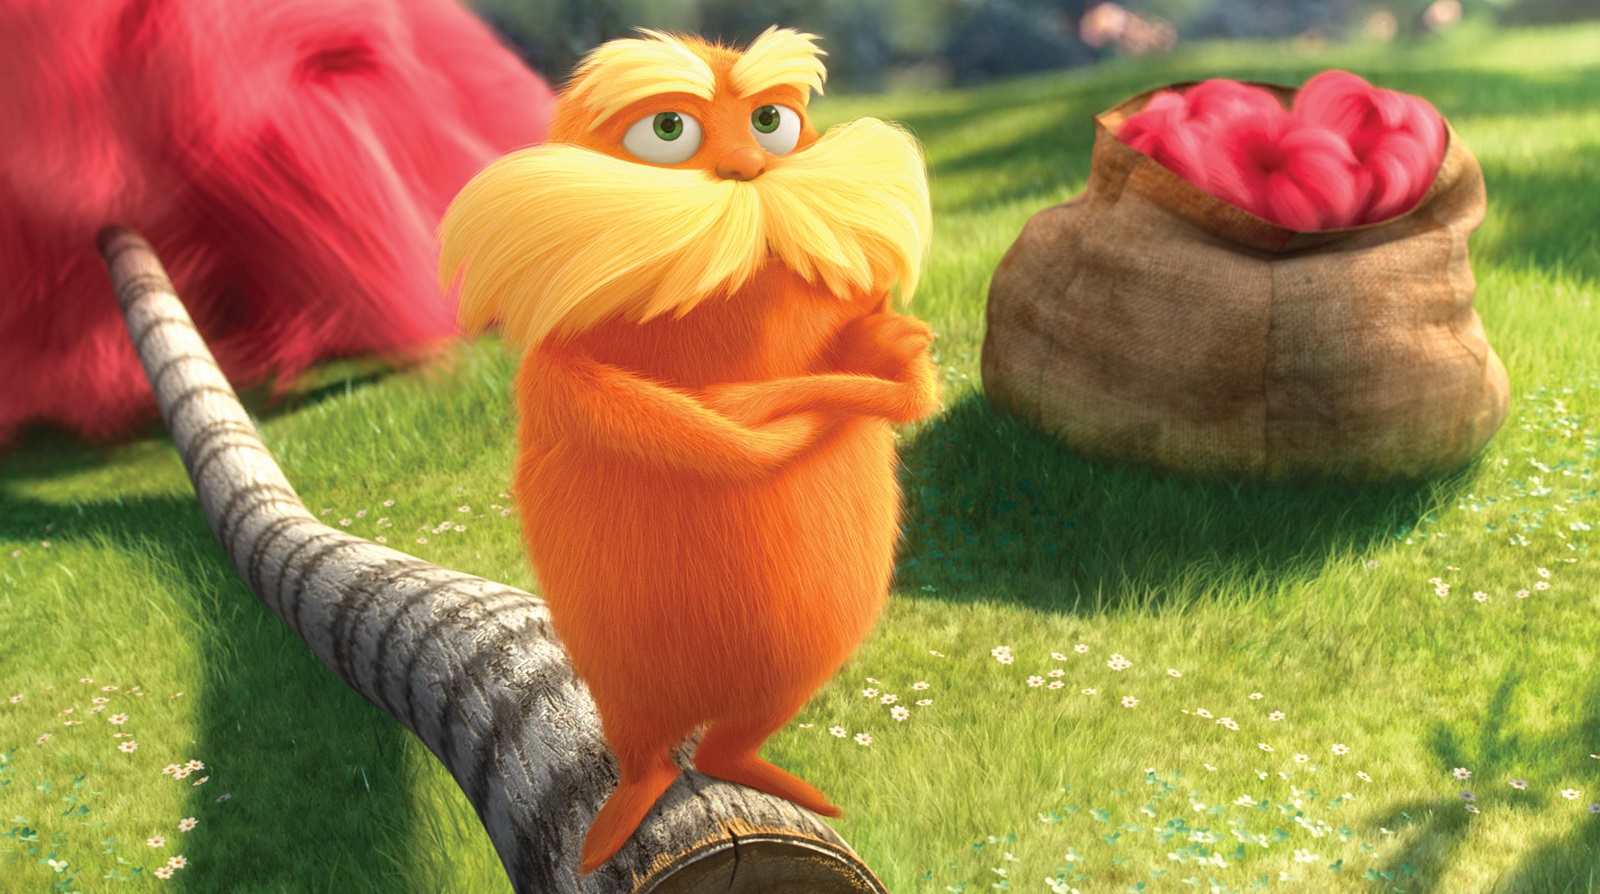 'The Lorax' was a popular movie based off of a Dr. Seuss book from 1971.